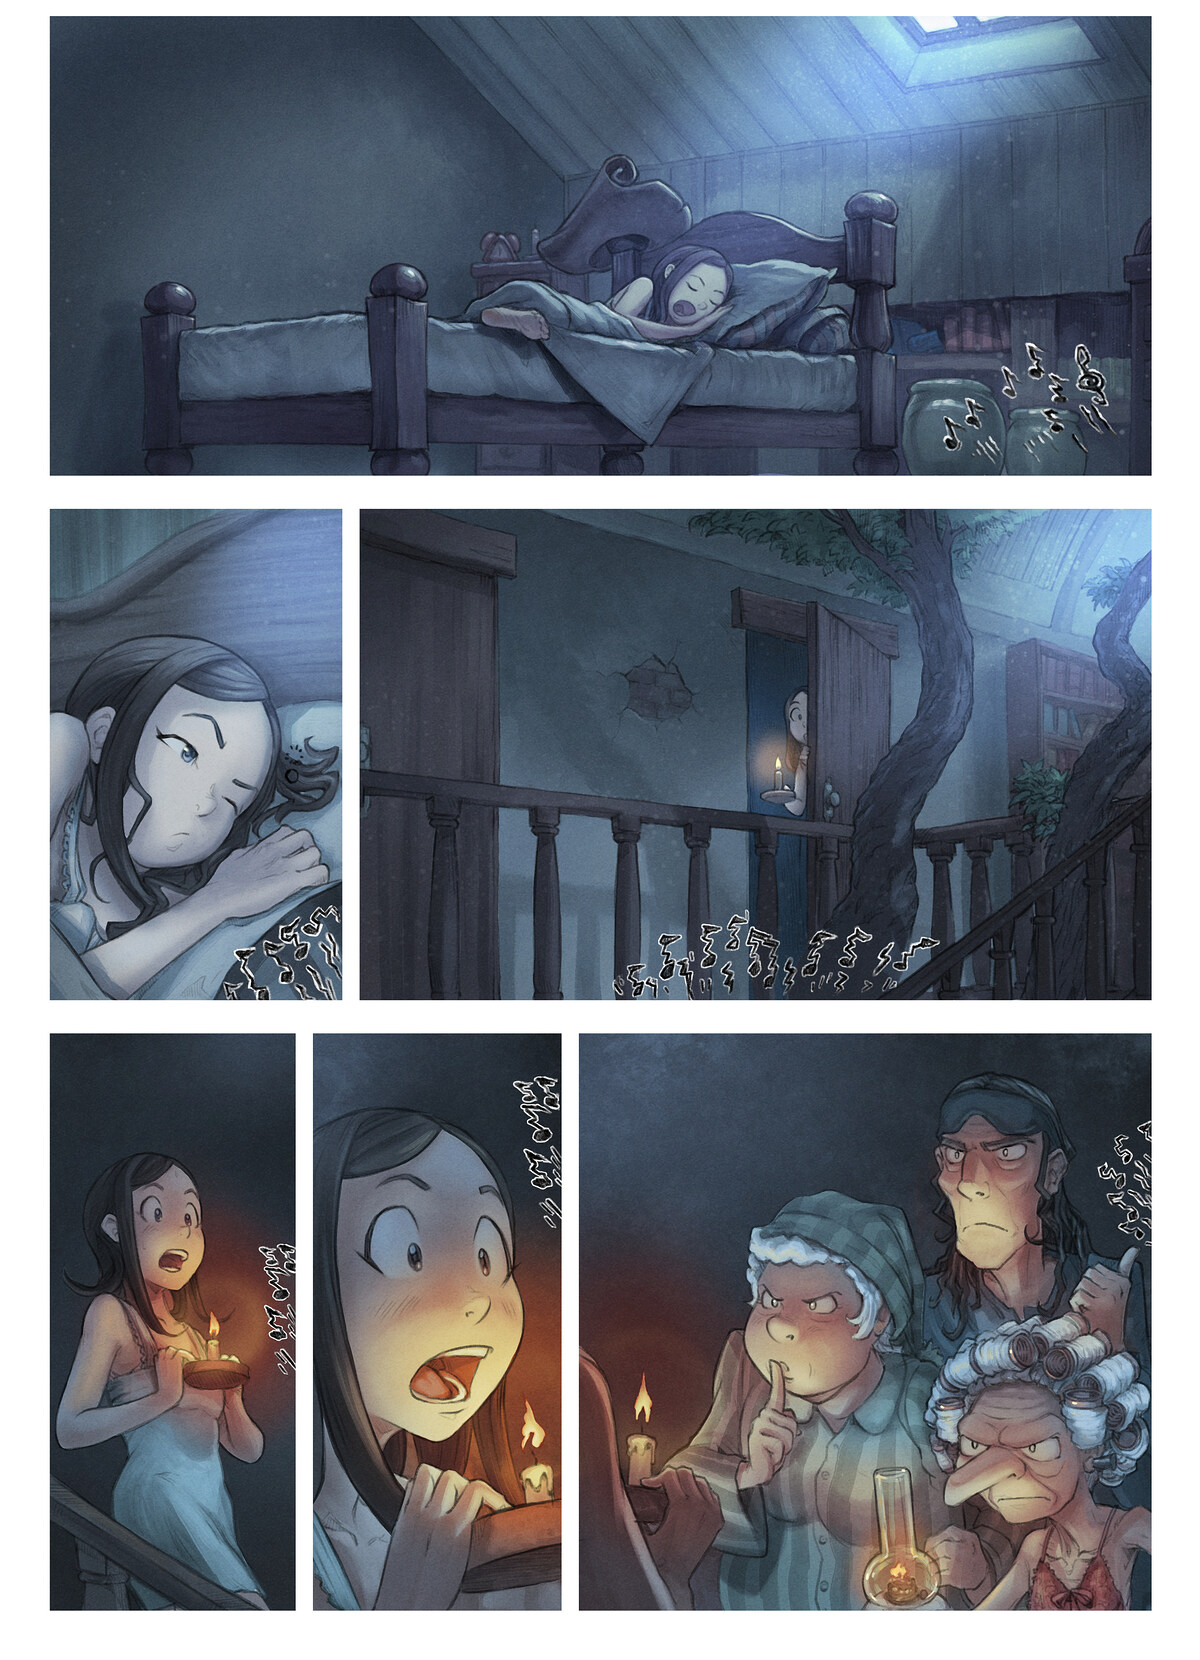 A webcomic page of Pepper&Carrot, Tập 30 [vi], trang 5